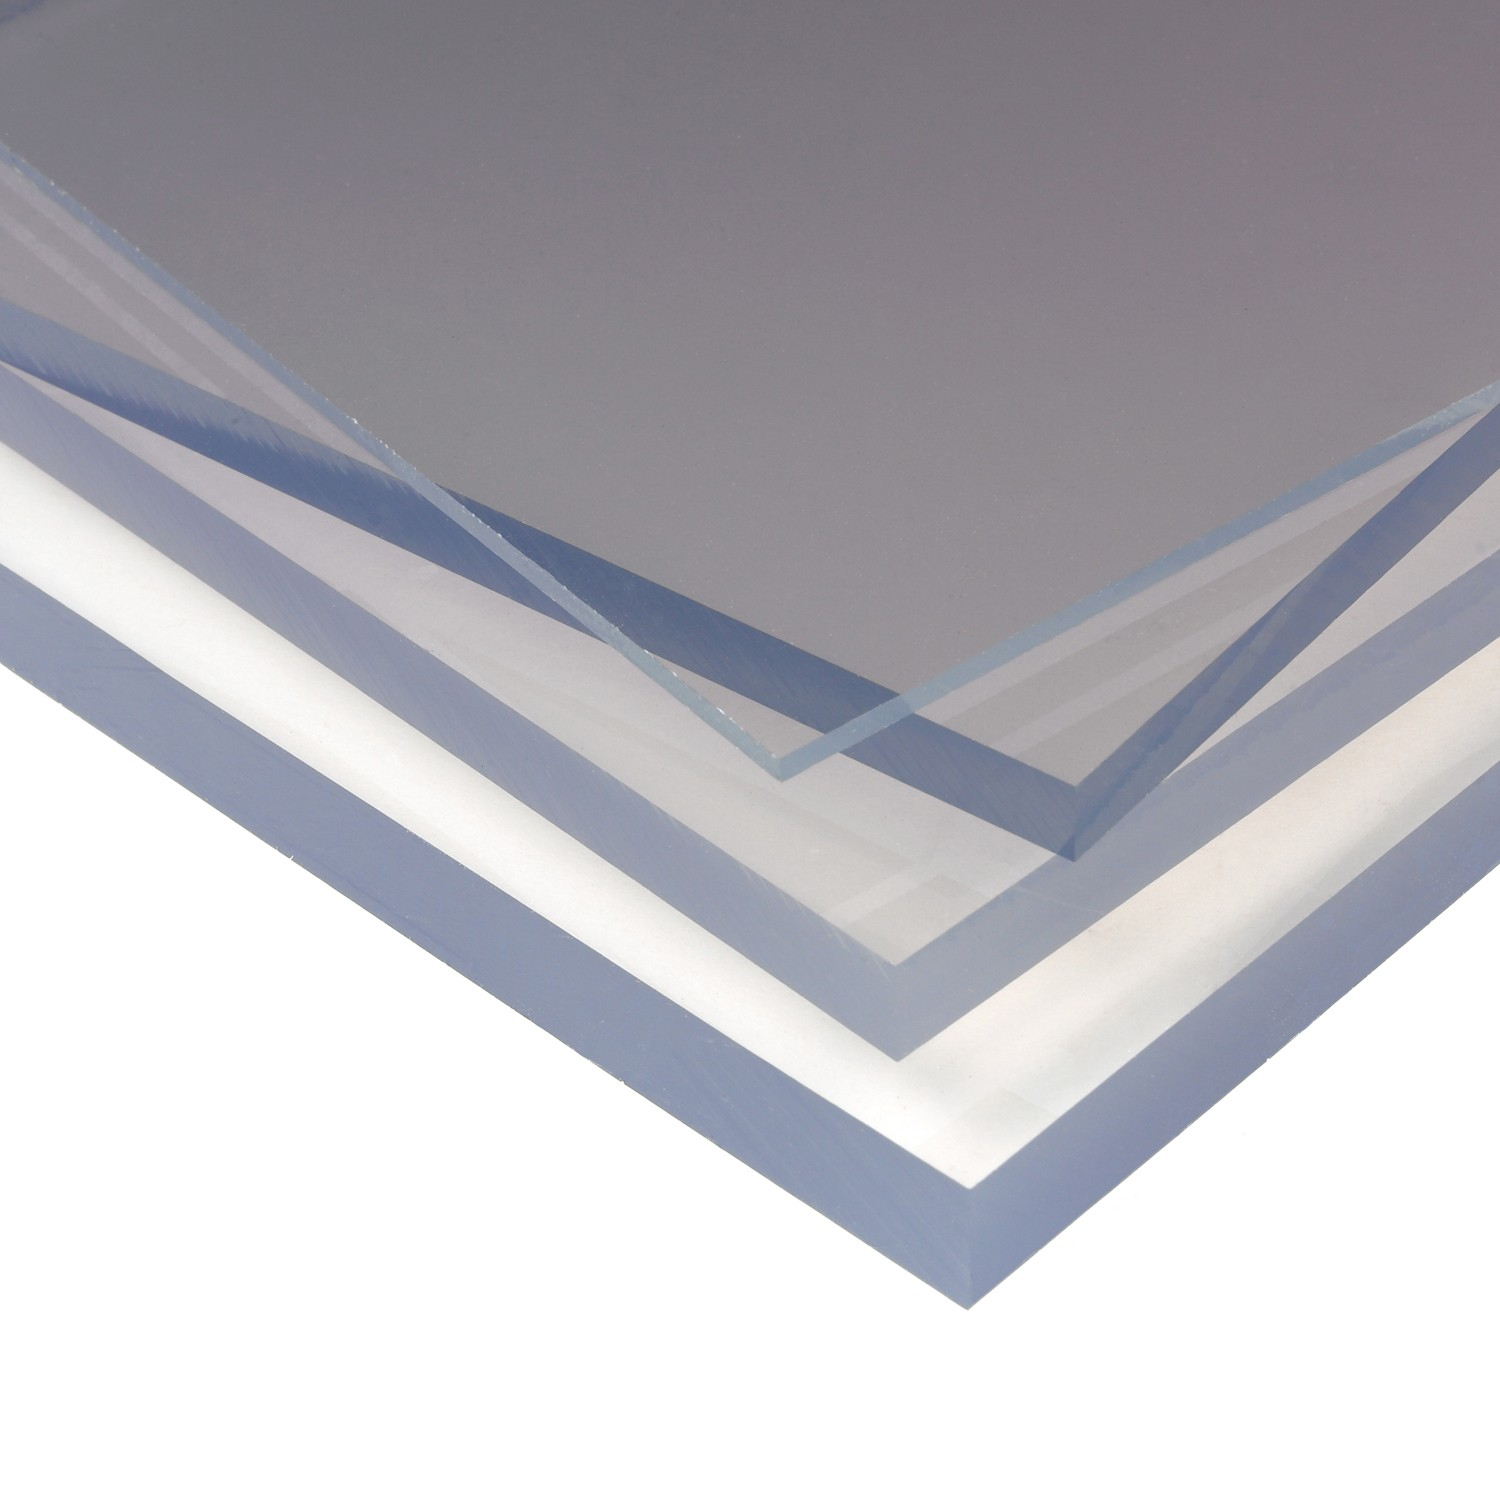 PSD 3mm A4 Size Solid Polycarbonate Plastic Sheet - Clear, 297mm x 210mm